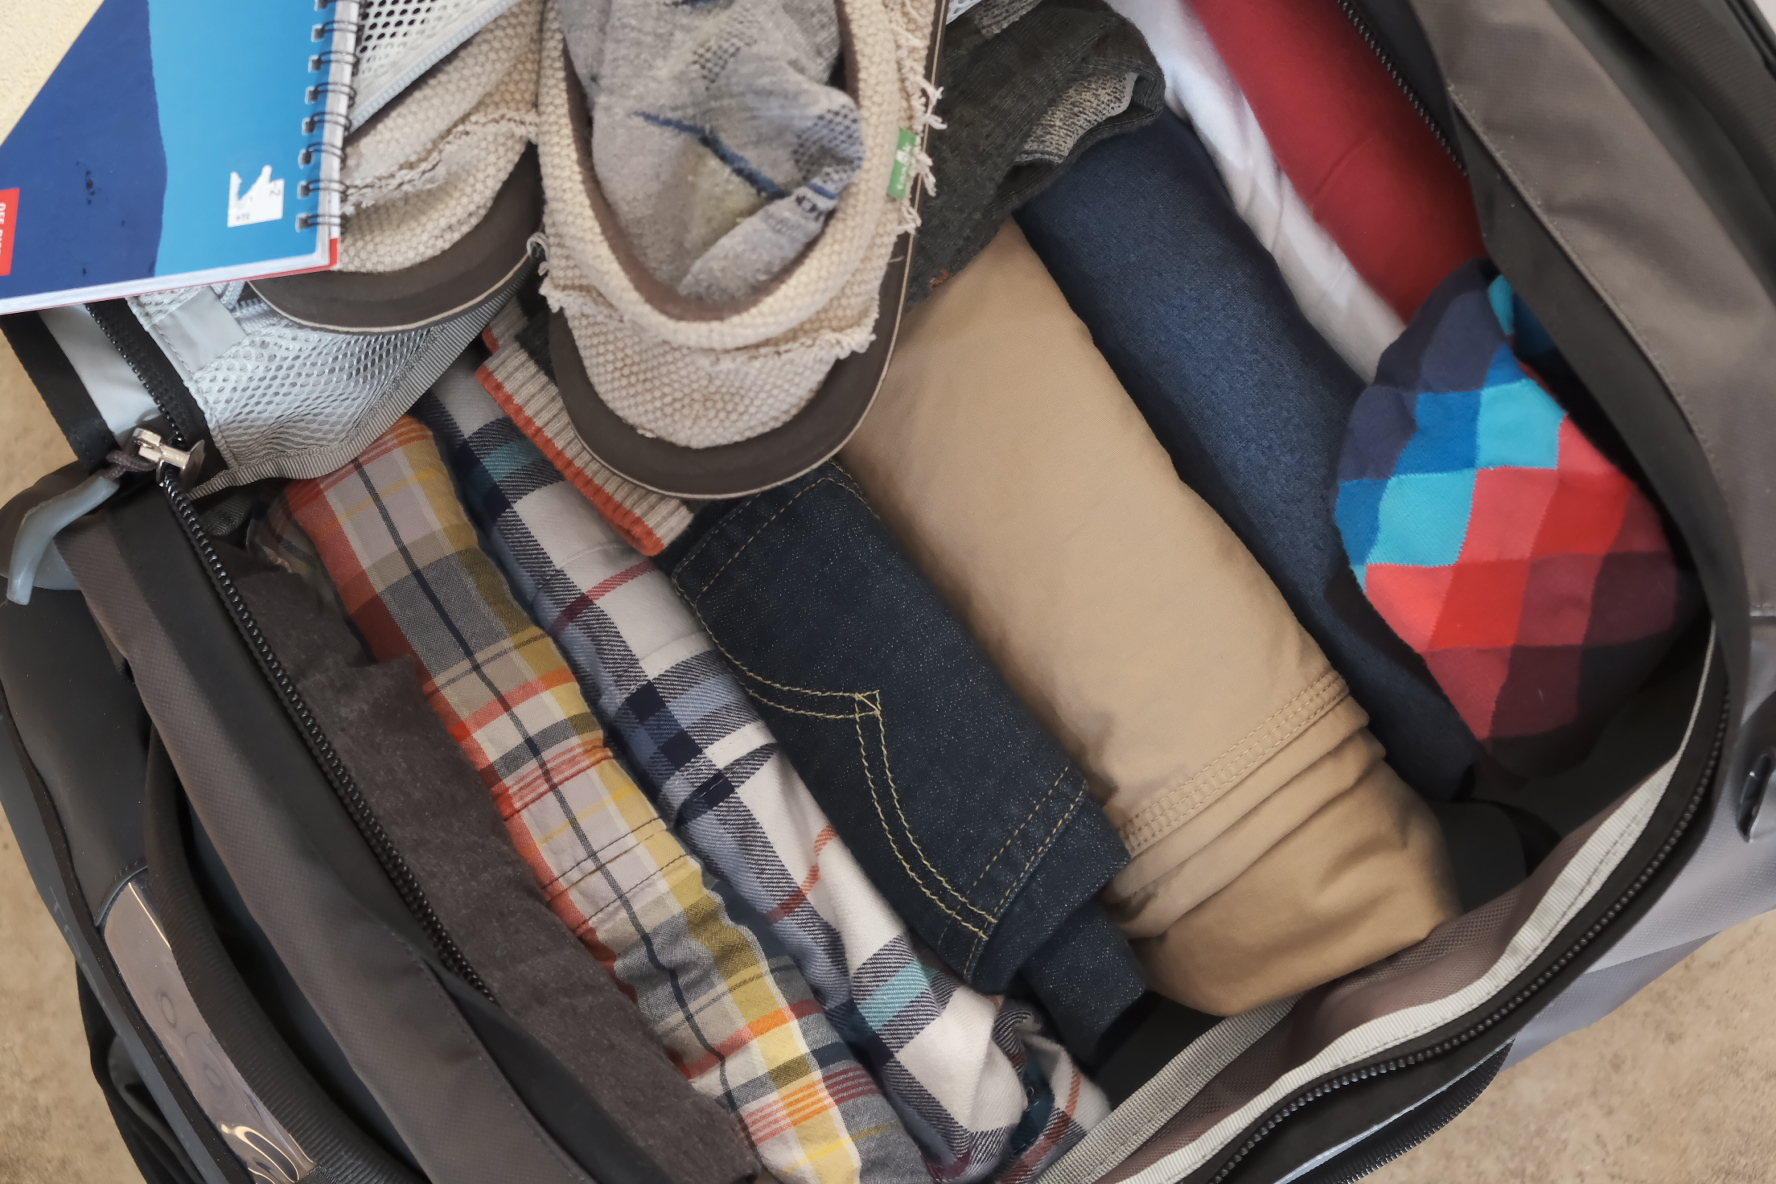 A luggage bag is packed full with pants, shirts, shoes and socks. Photo by Brandon Mathis.